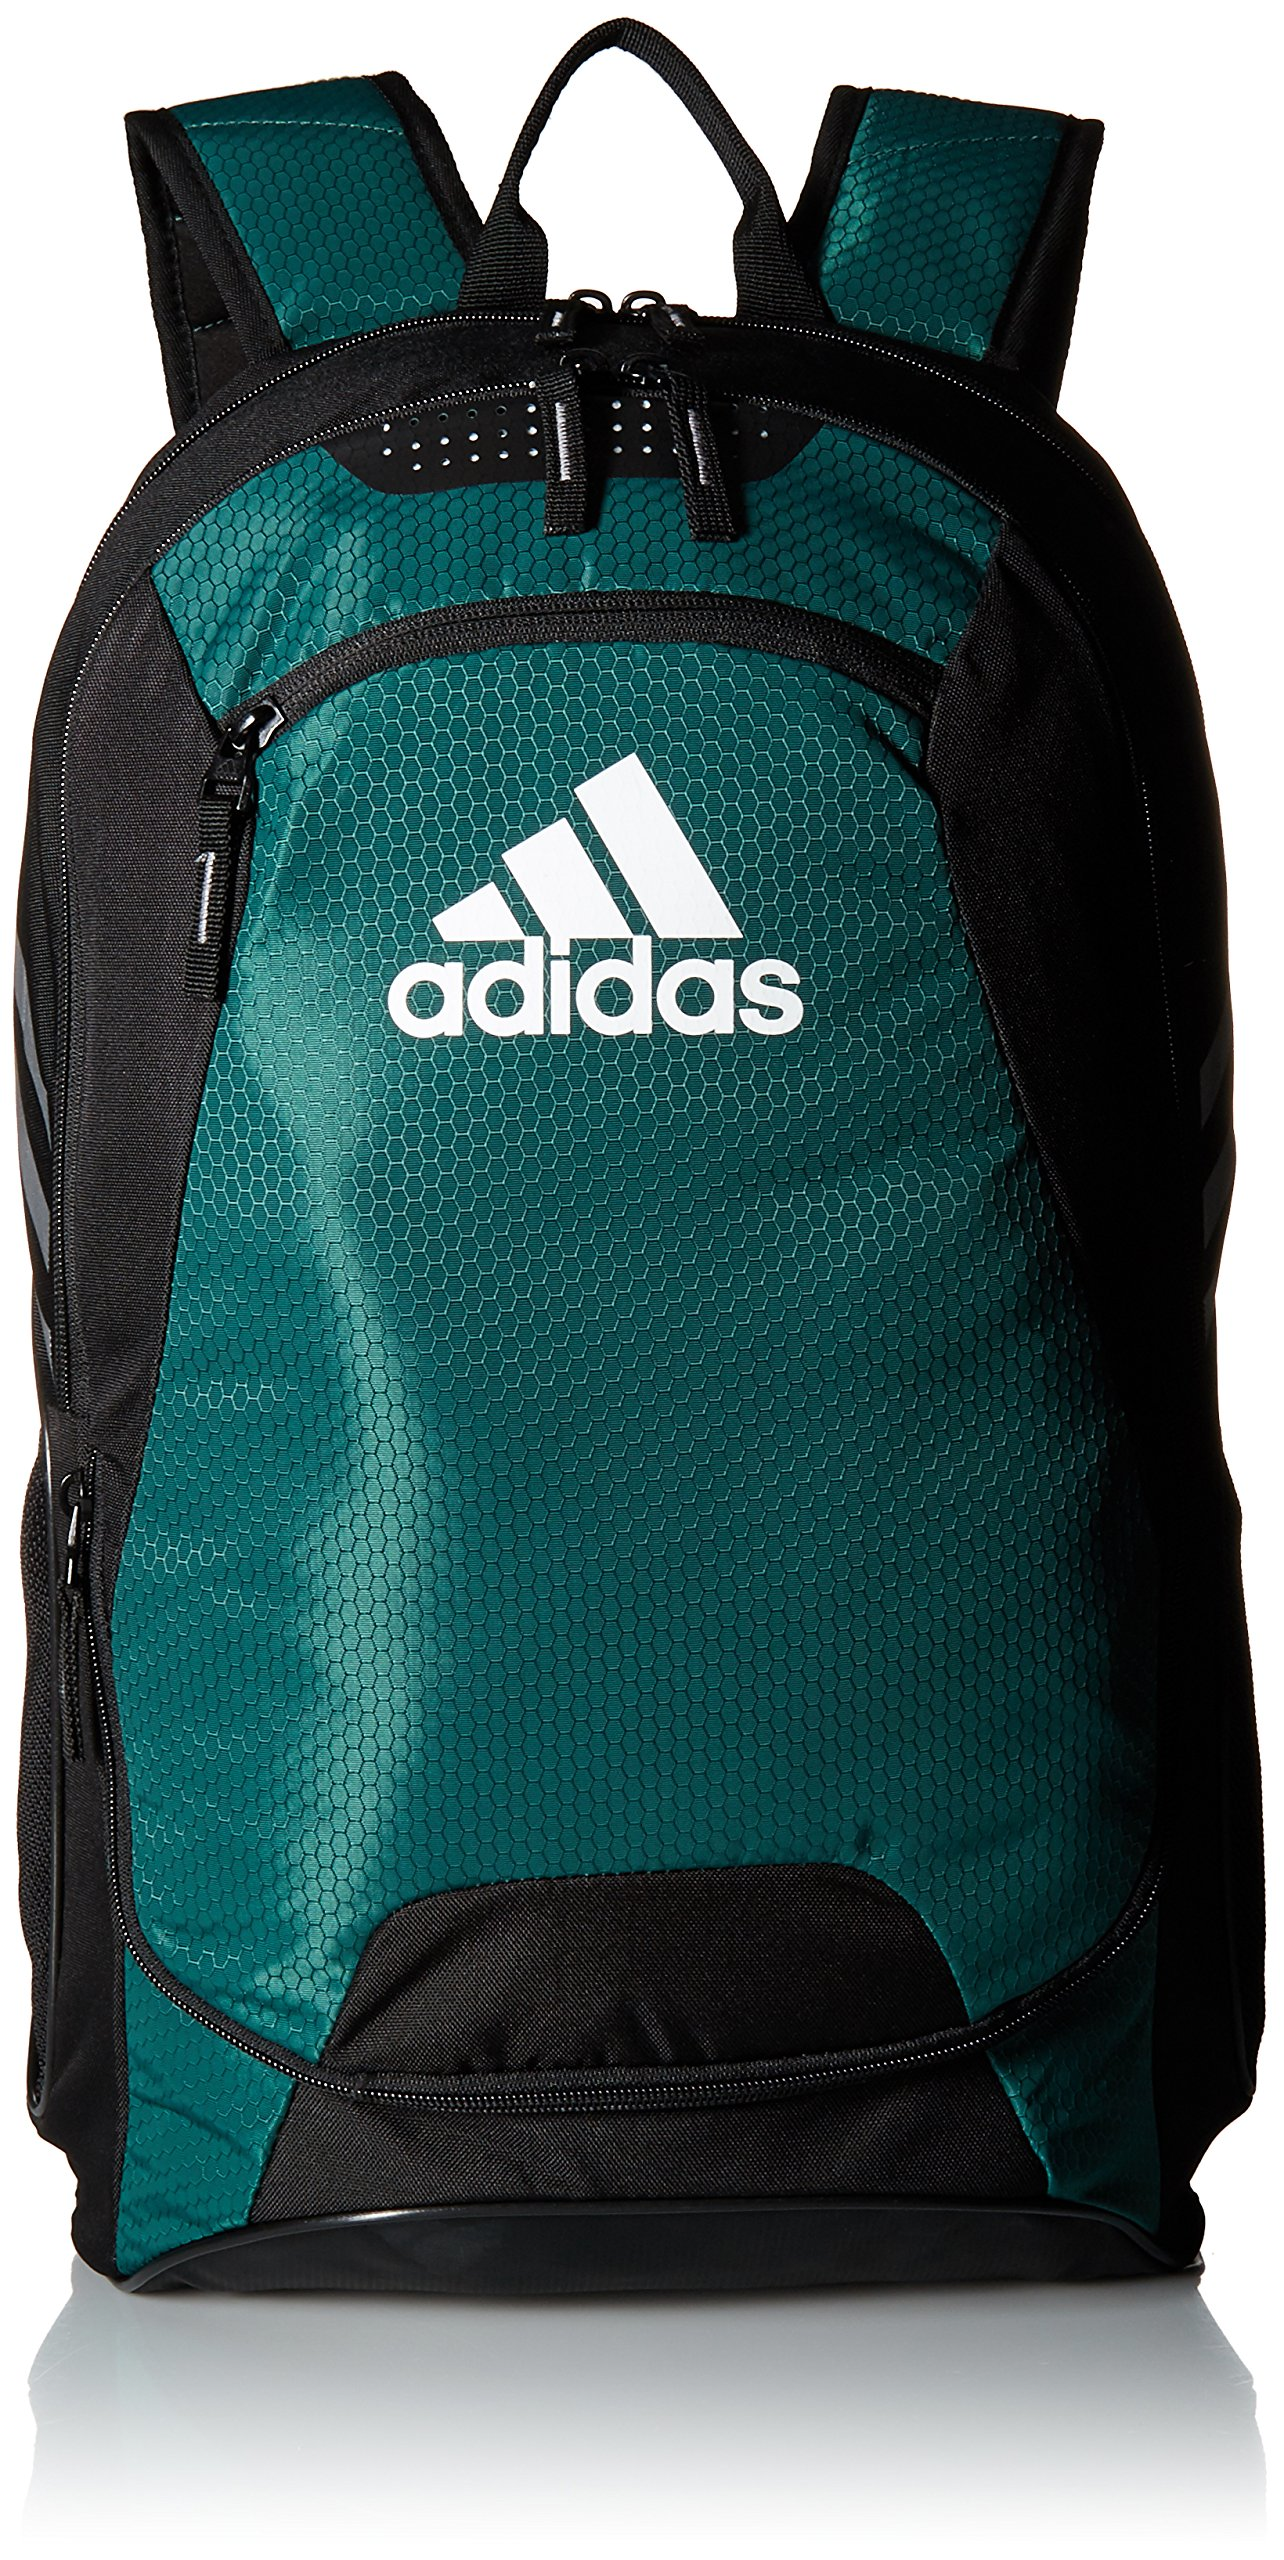 adidas Stadium II backpack, Green, One Size